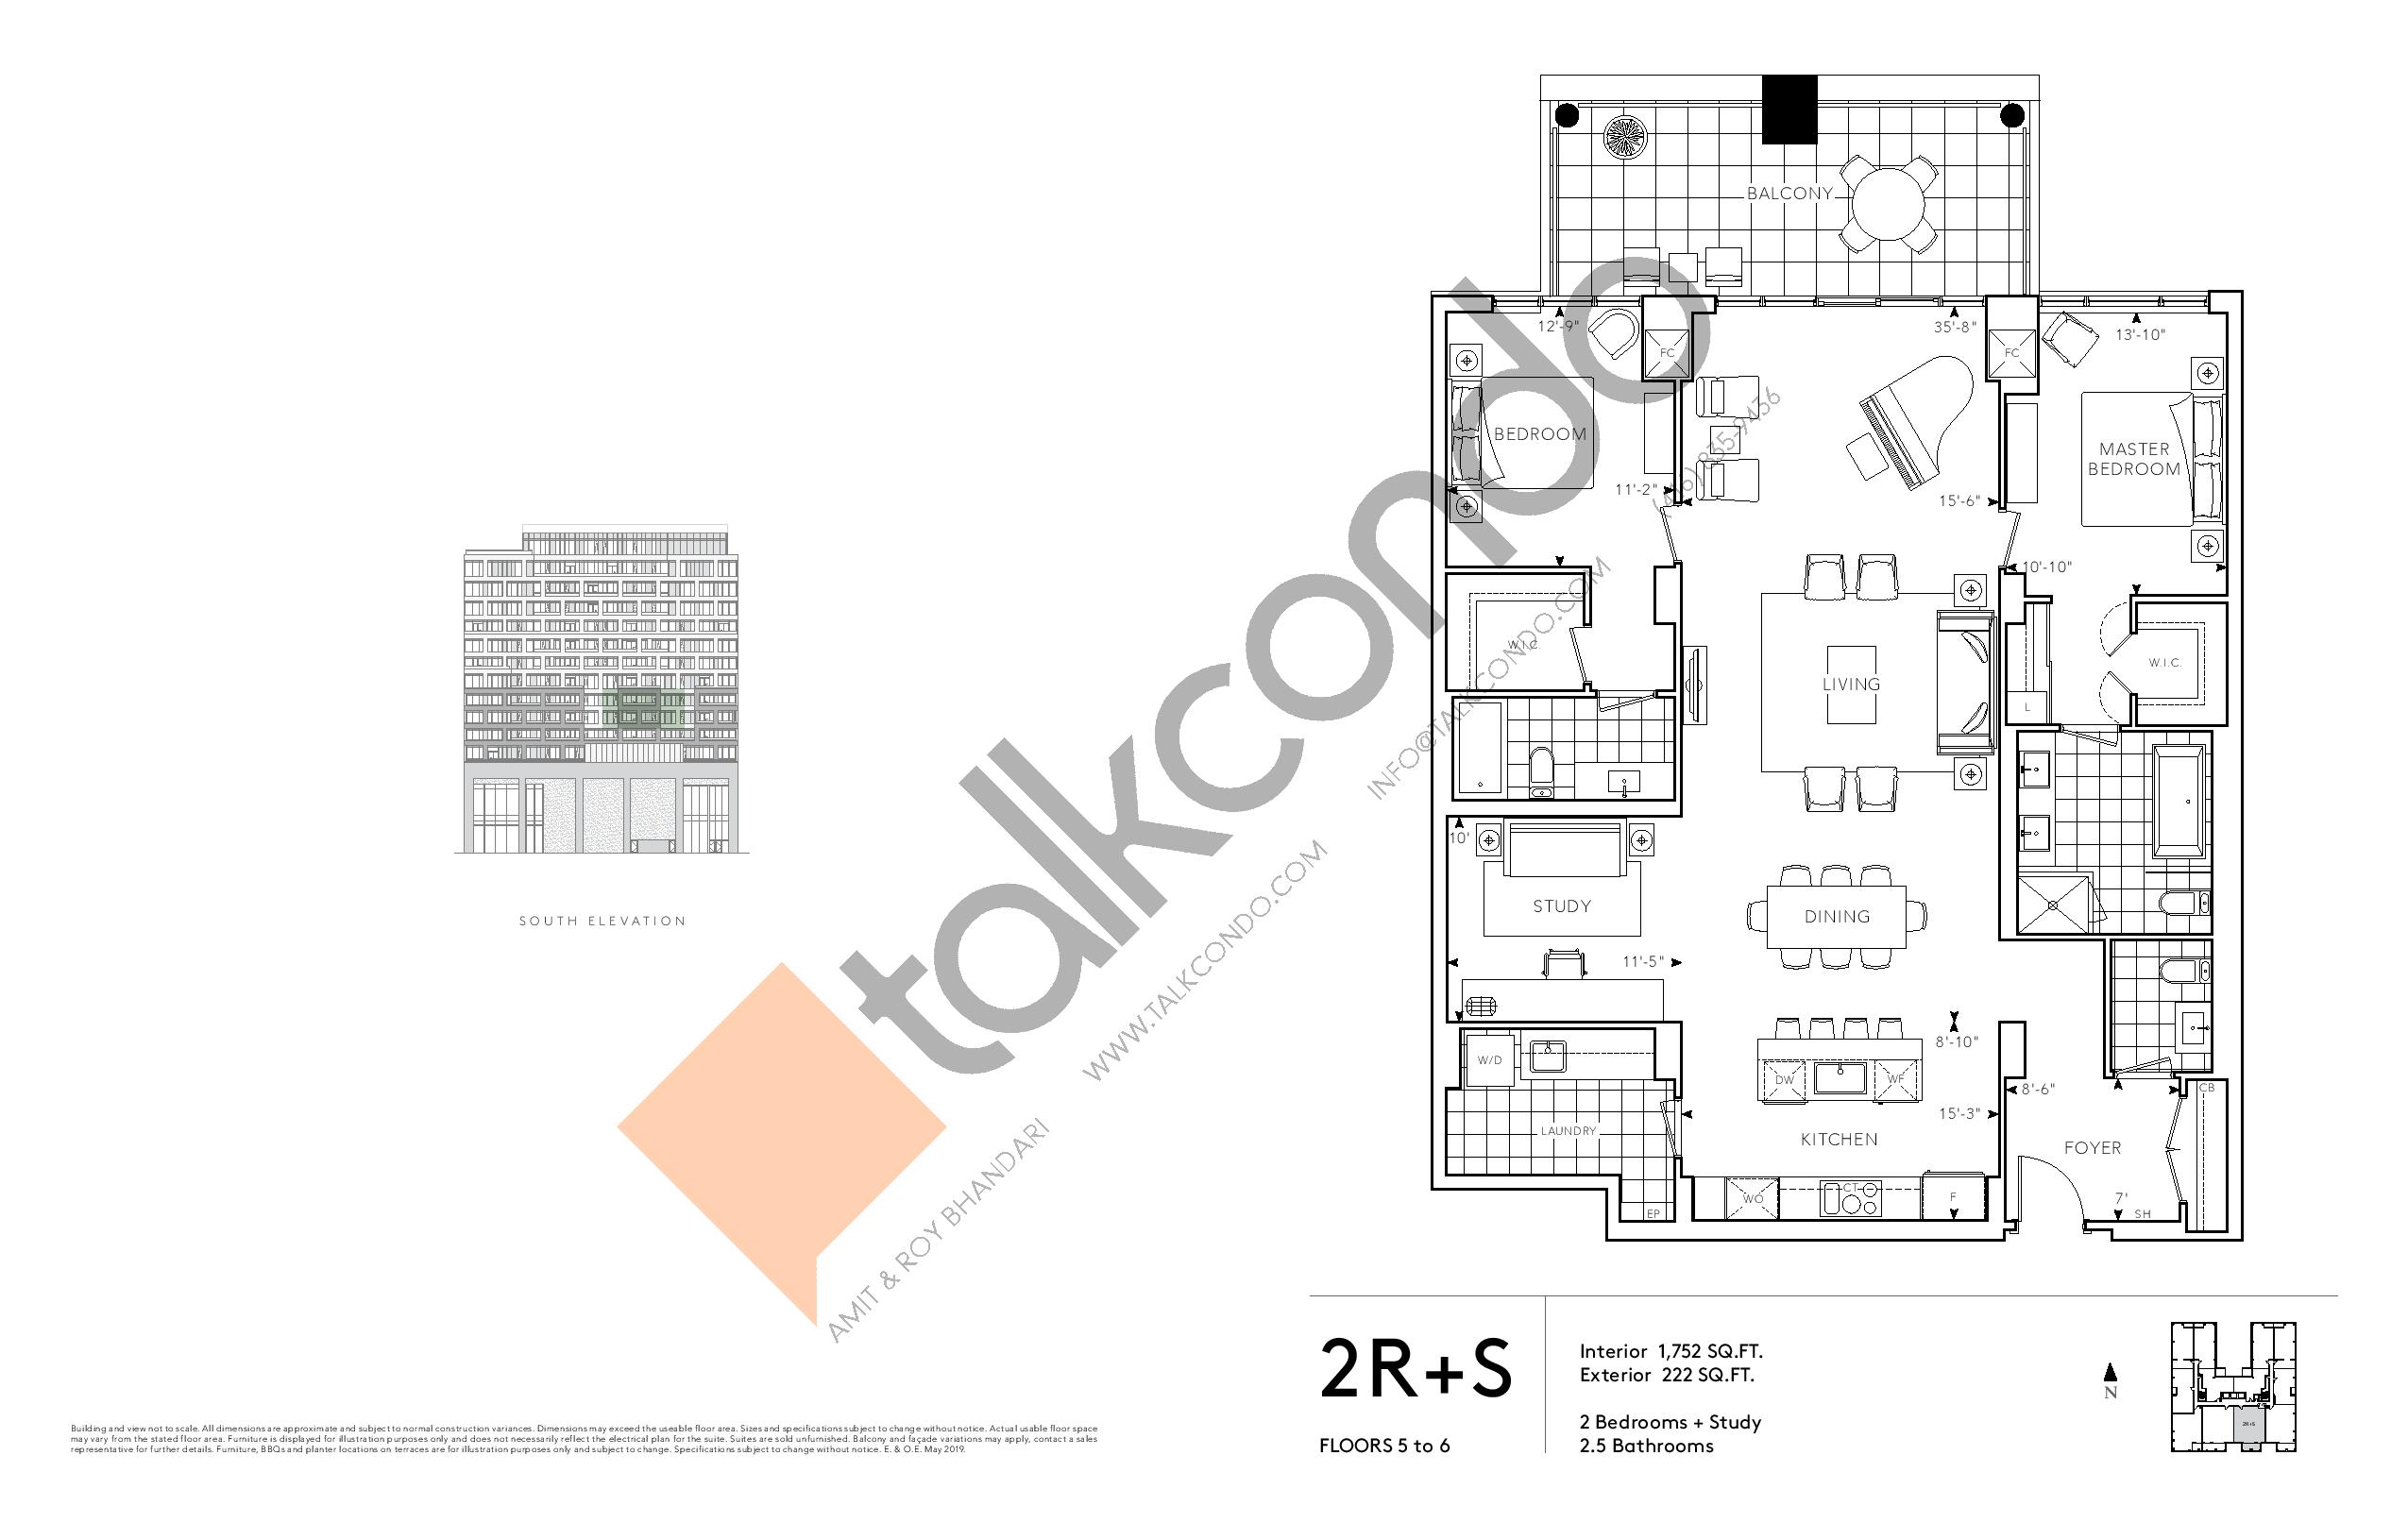 2R+S - Signature Series Floor Plan at Tridel at The Well Condos - 1752 sq.ft